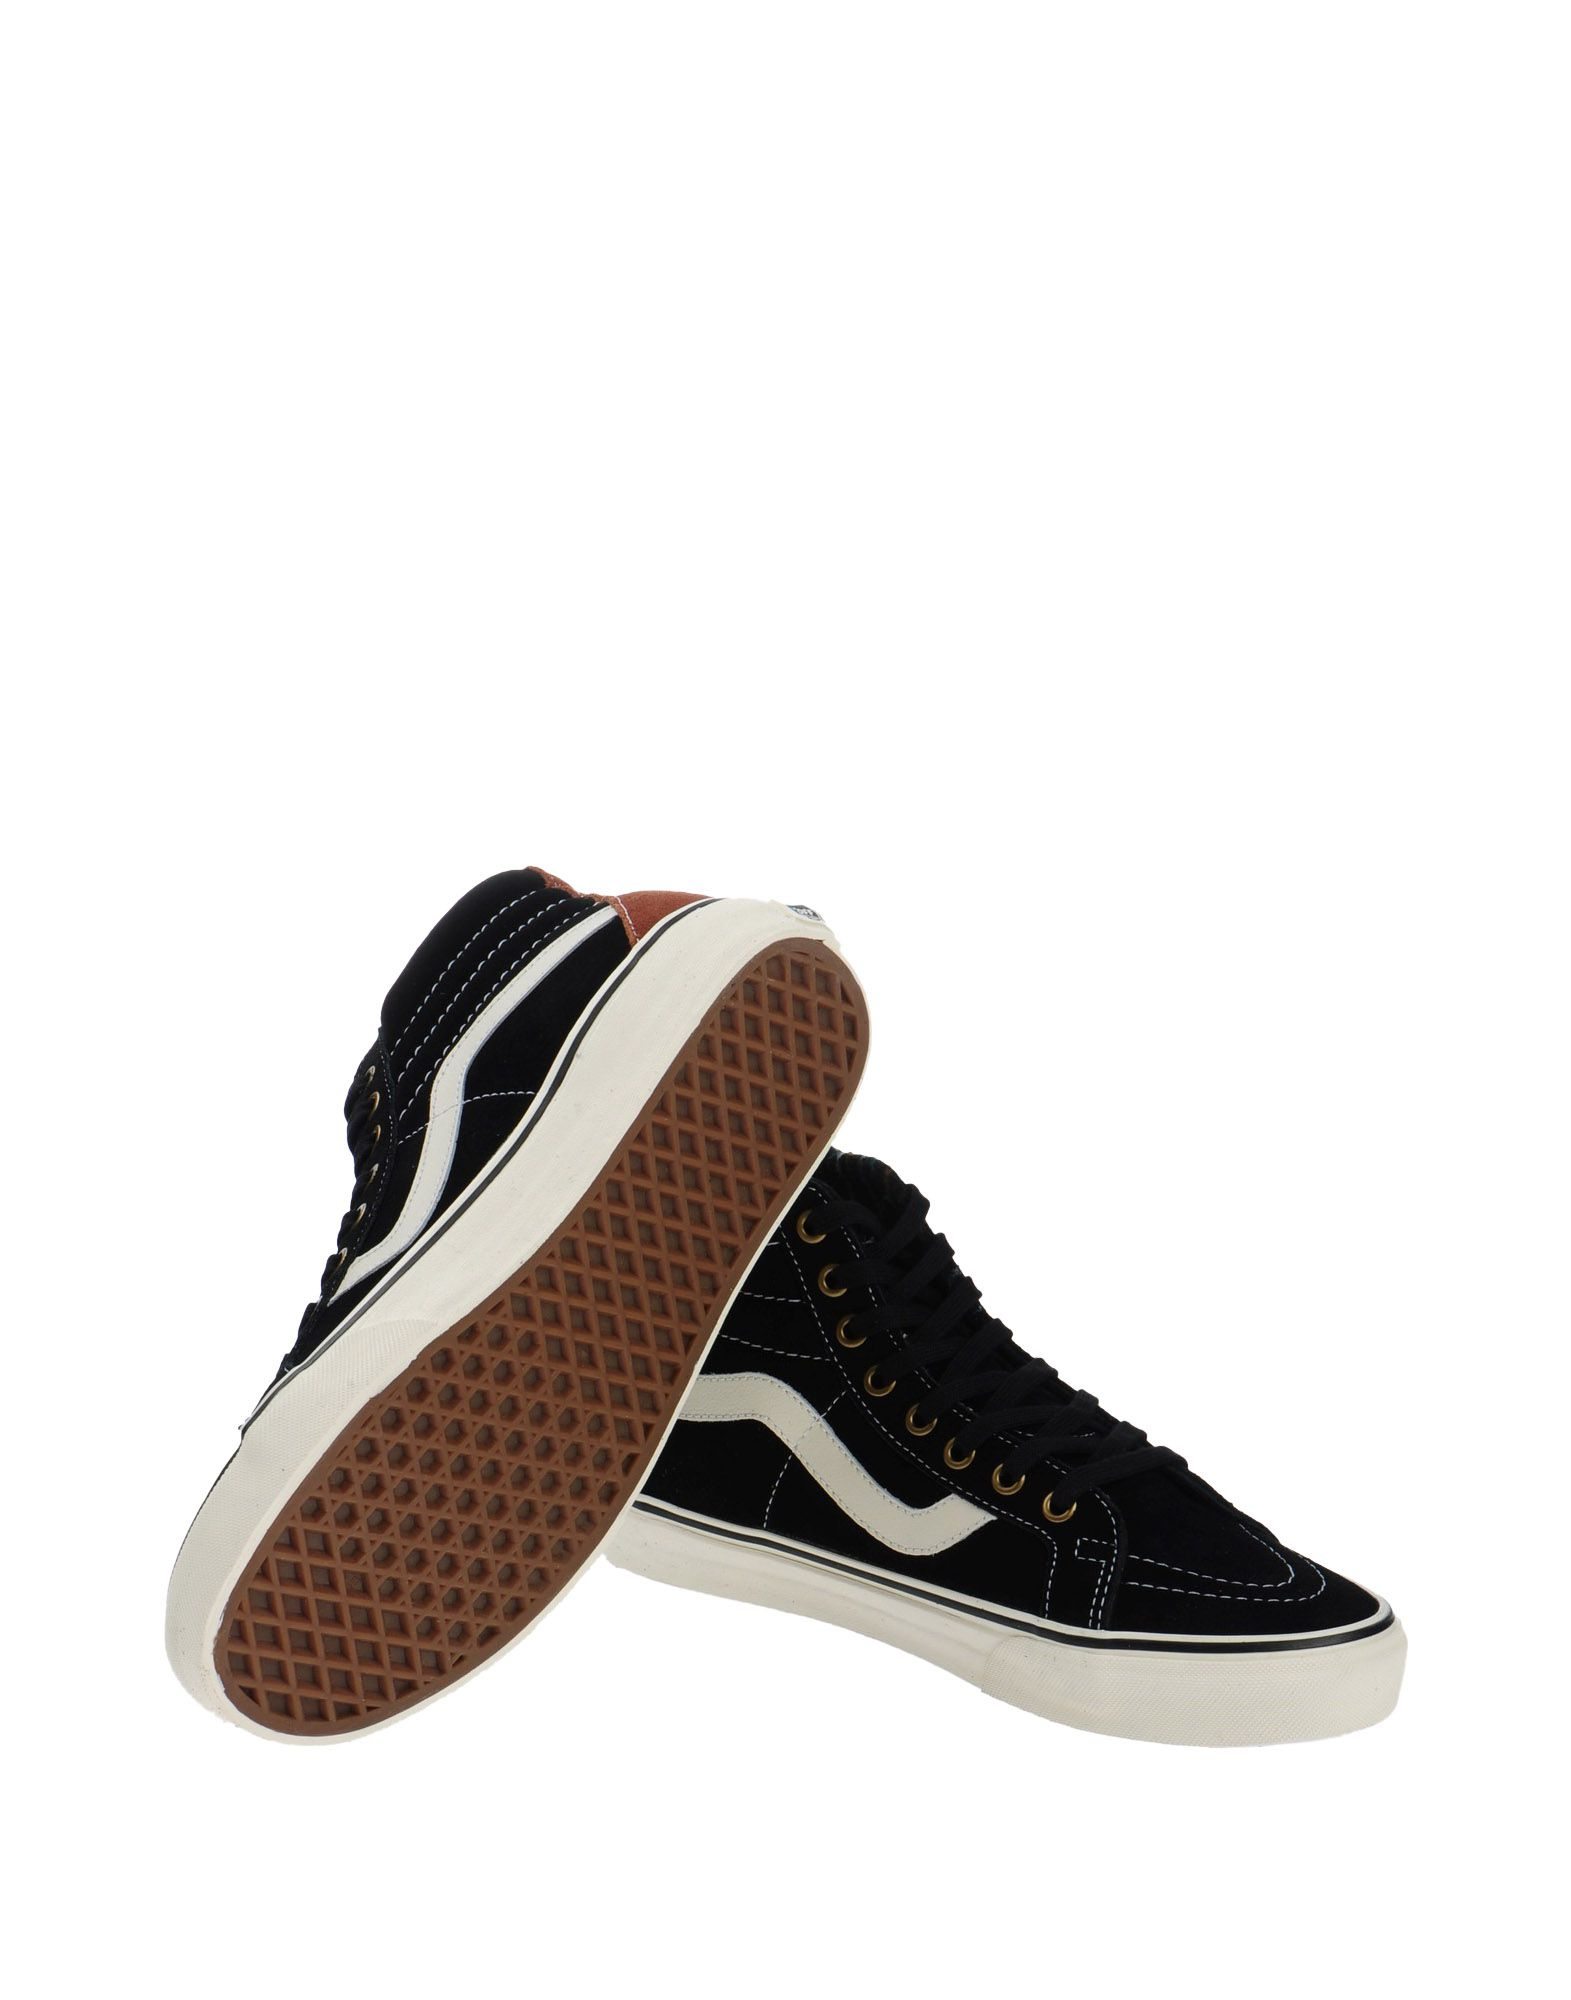 Vans High-tops & Trainers in Black for Men | Lyst